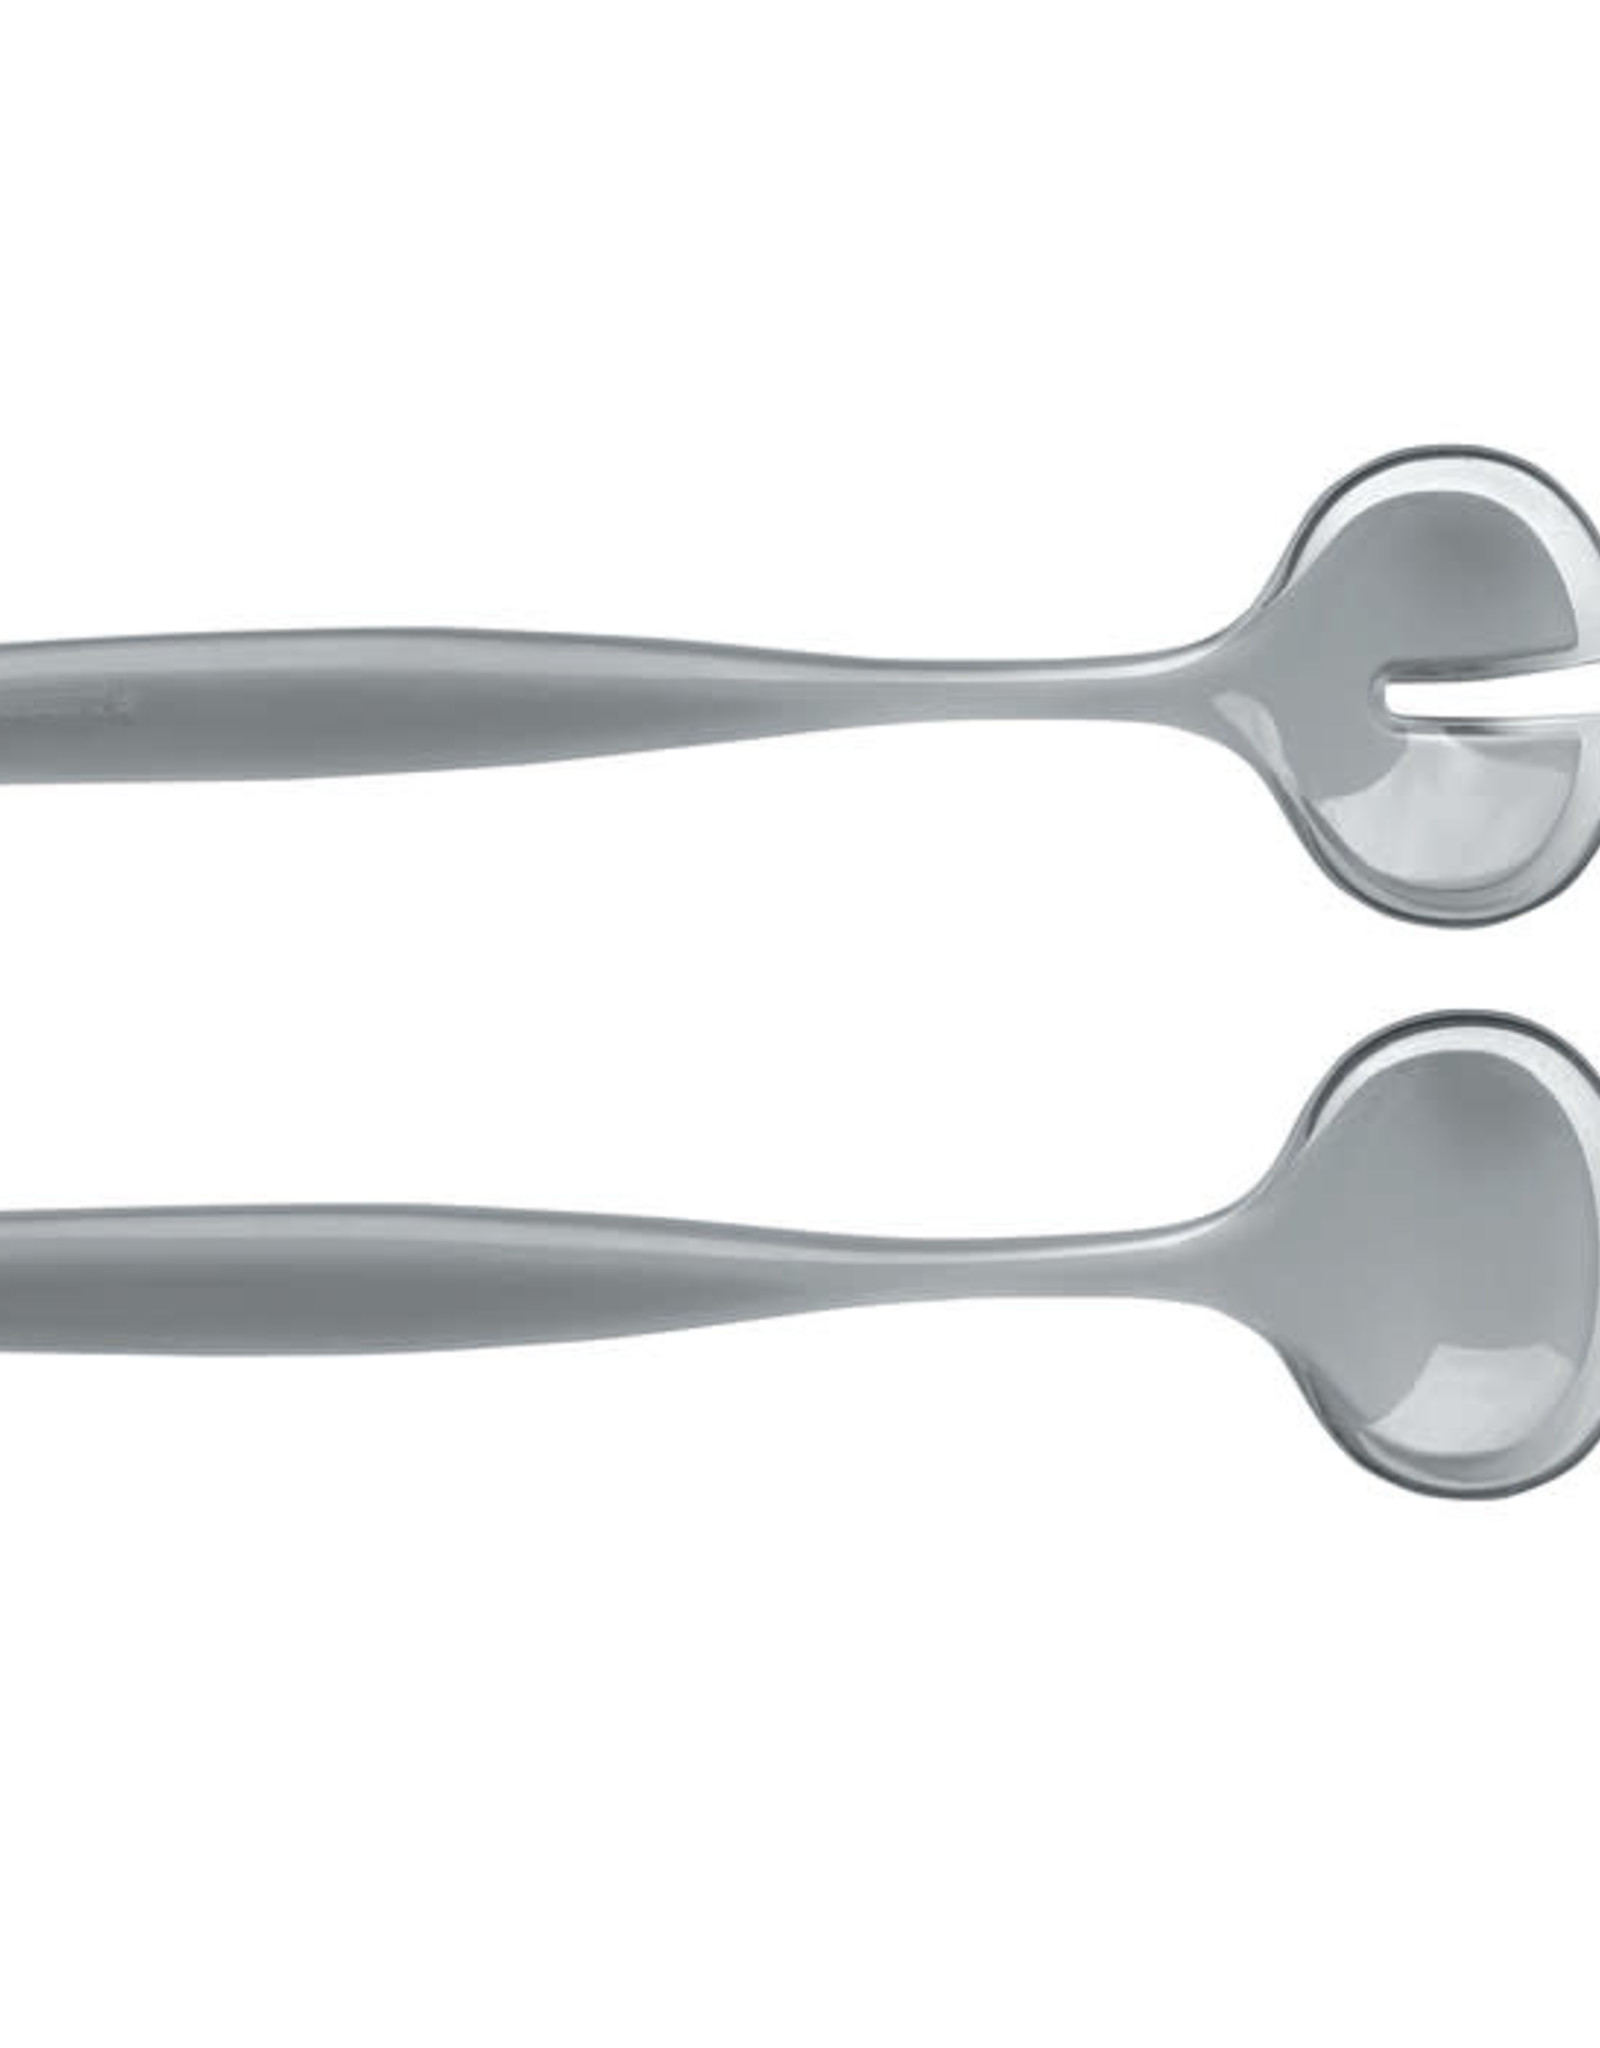 Guzzini Grace Salad Servers